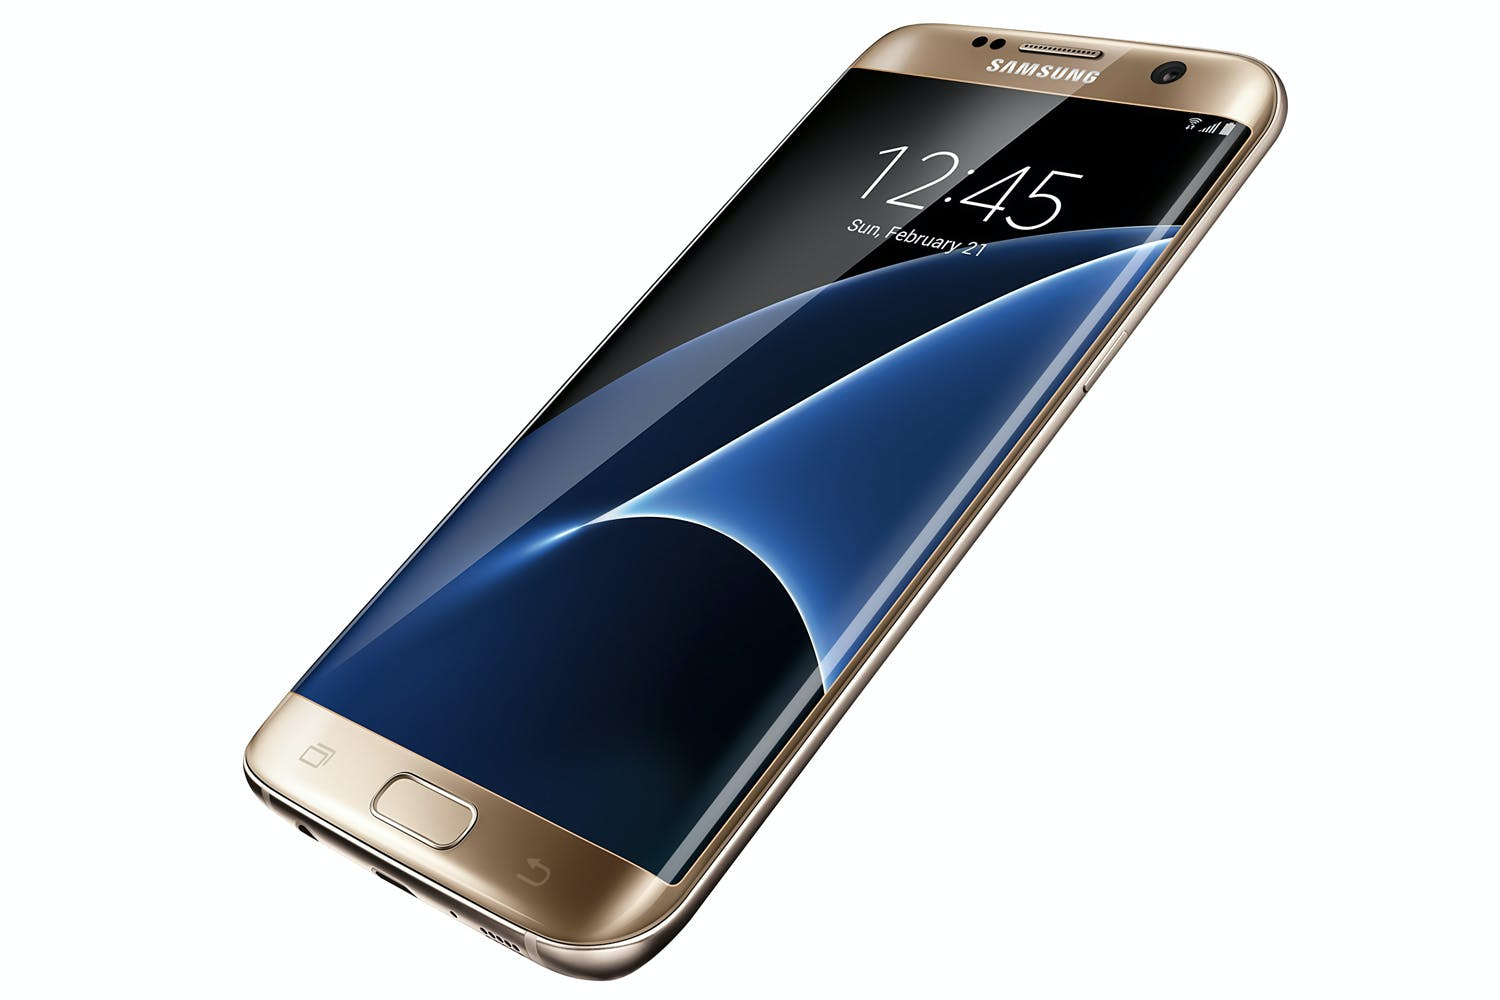 [Image: SAMSUNG_GALAXY_S7_EDGE_GOLD-1.jpg?fit=fi...t,compress]